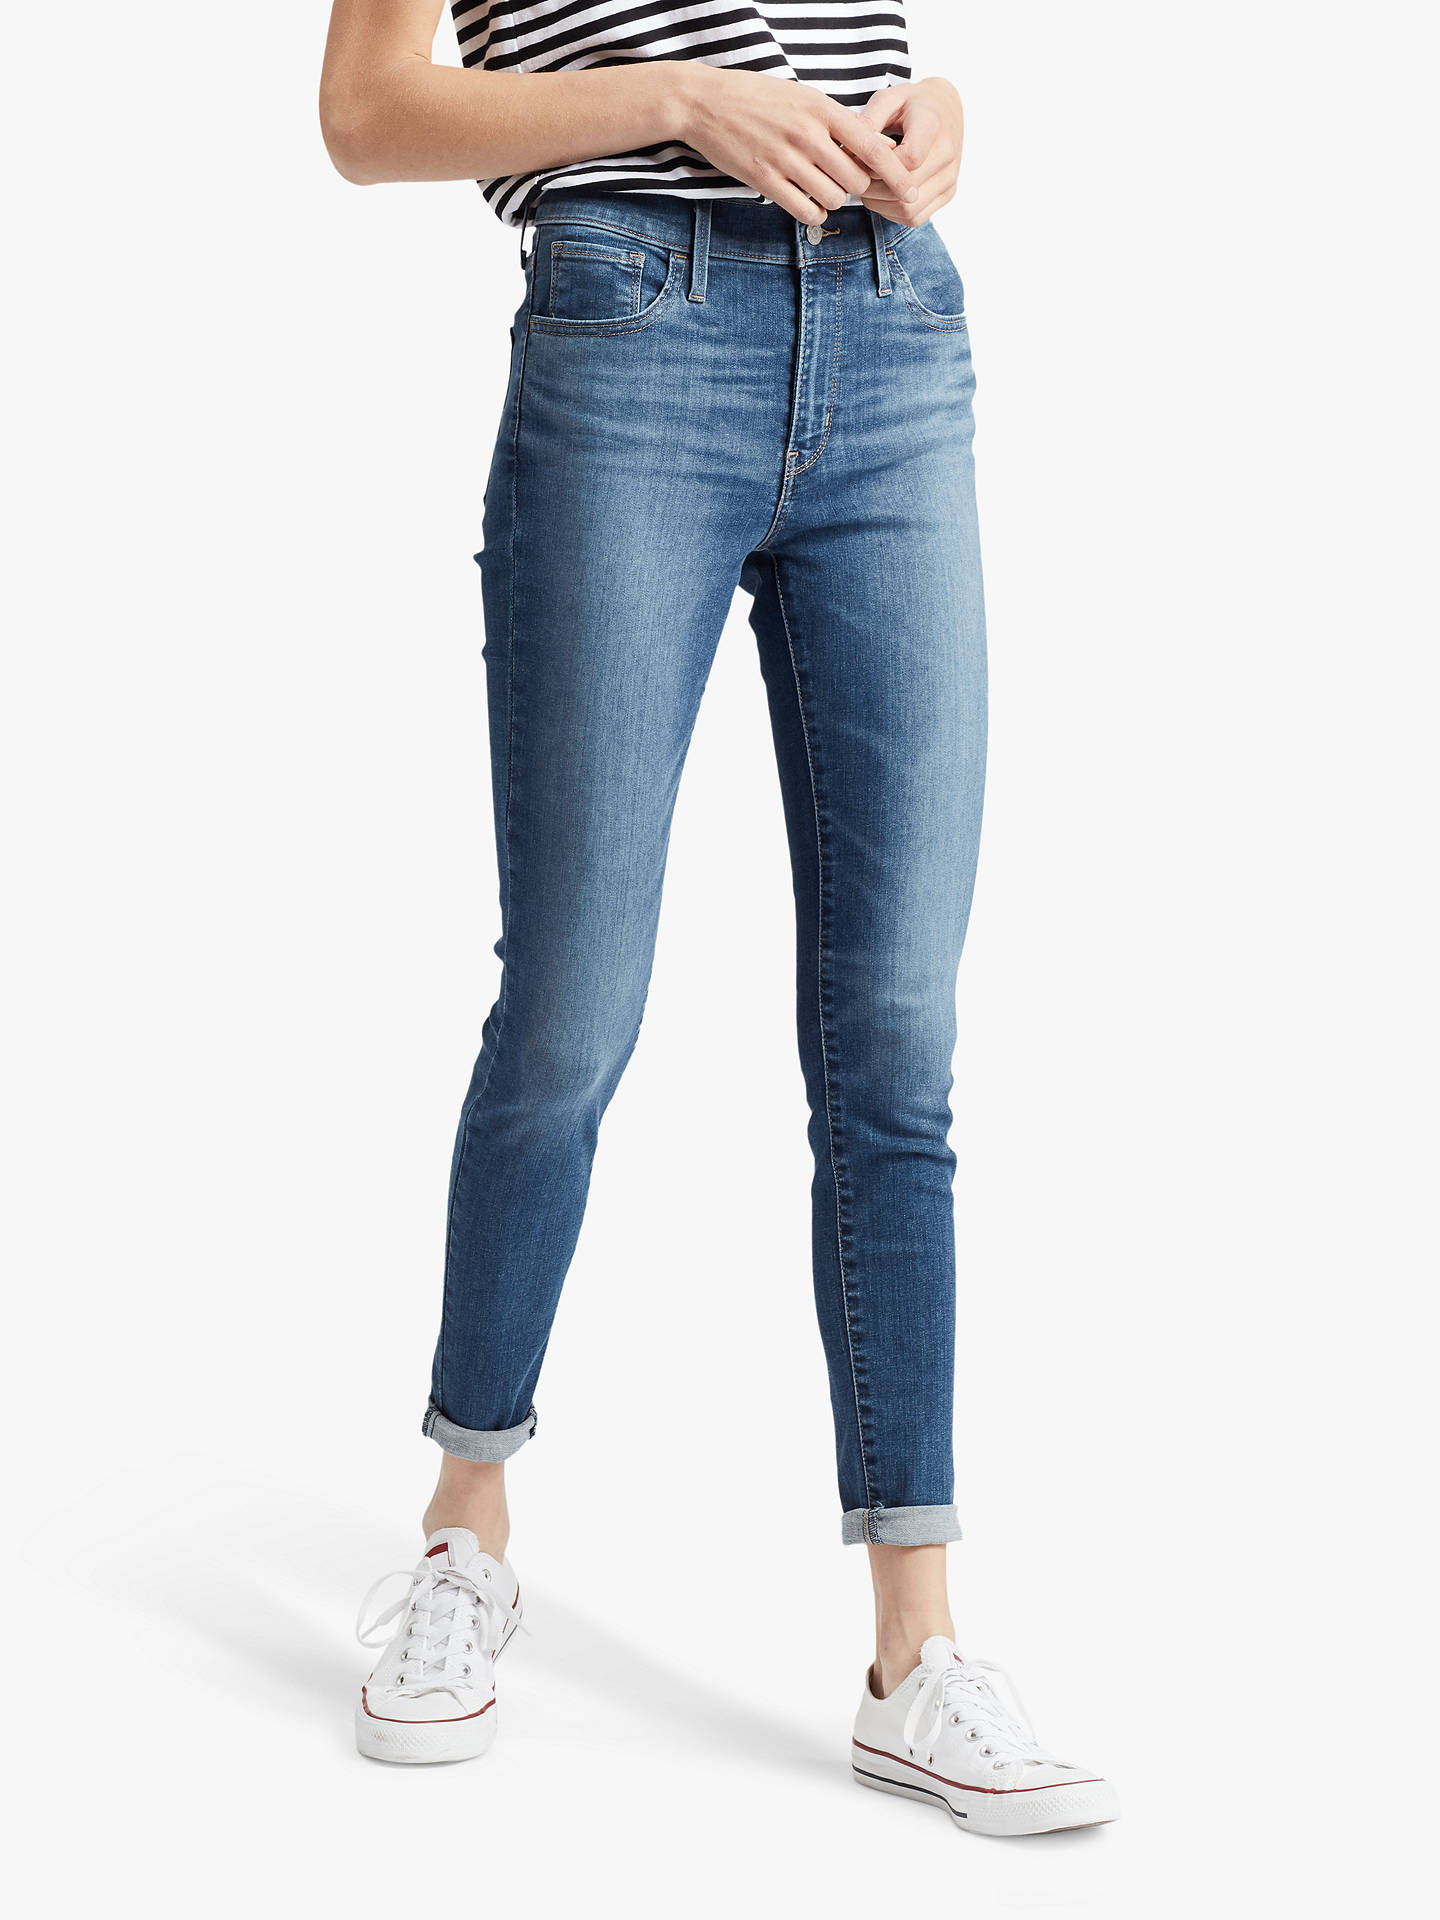 Levi's 720 High Rise Super Skinny Jeans, Love Ride T2 by Levi's